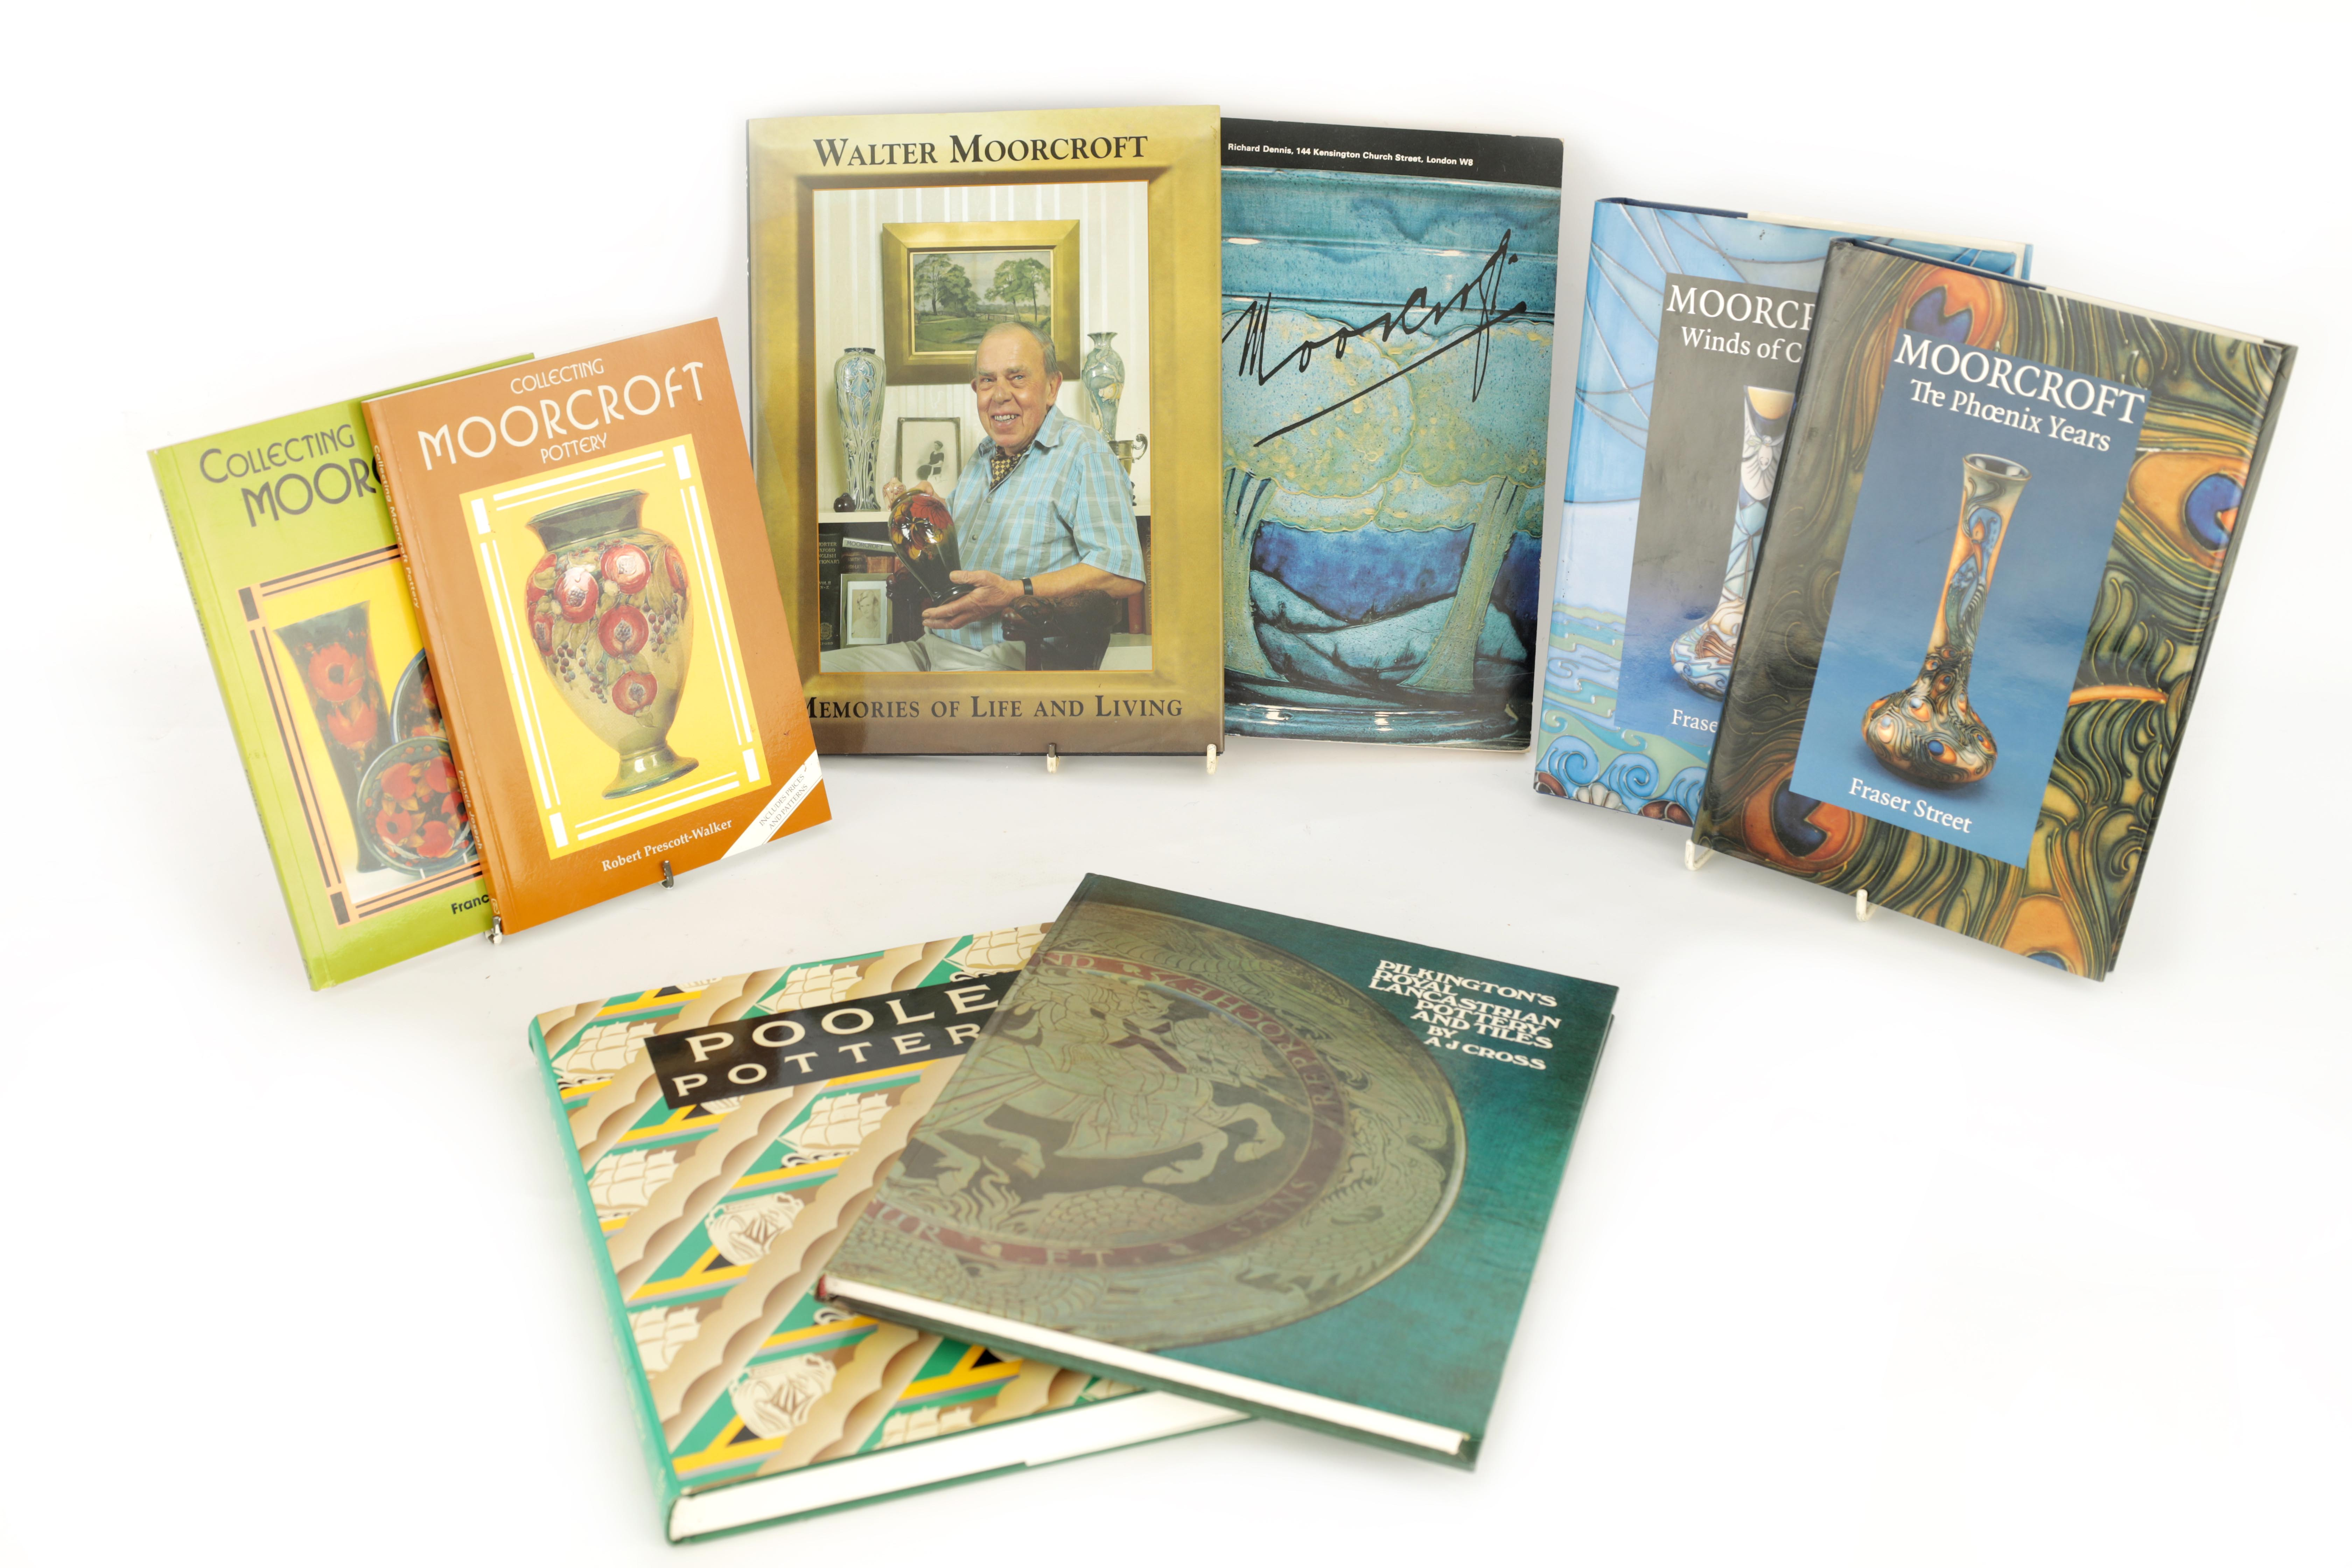 A COLLECTION OF EIGHT CERAMIC REFERENCE BOOKS including Poole pottery by Lesley Haward edited by